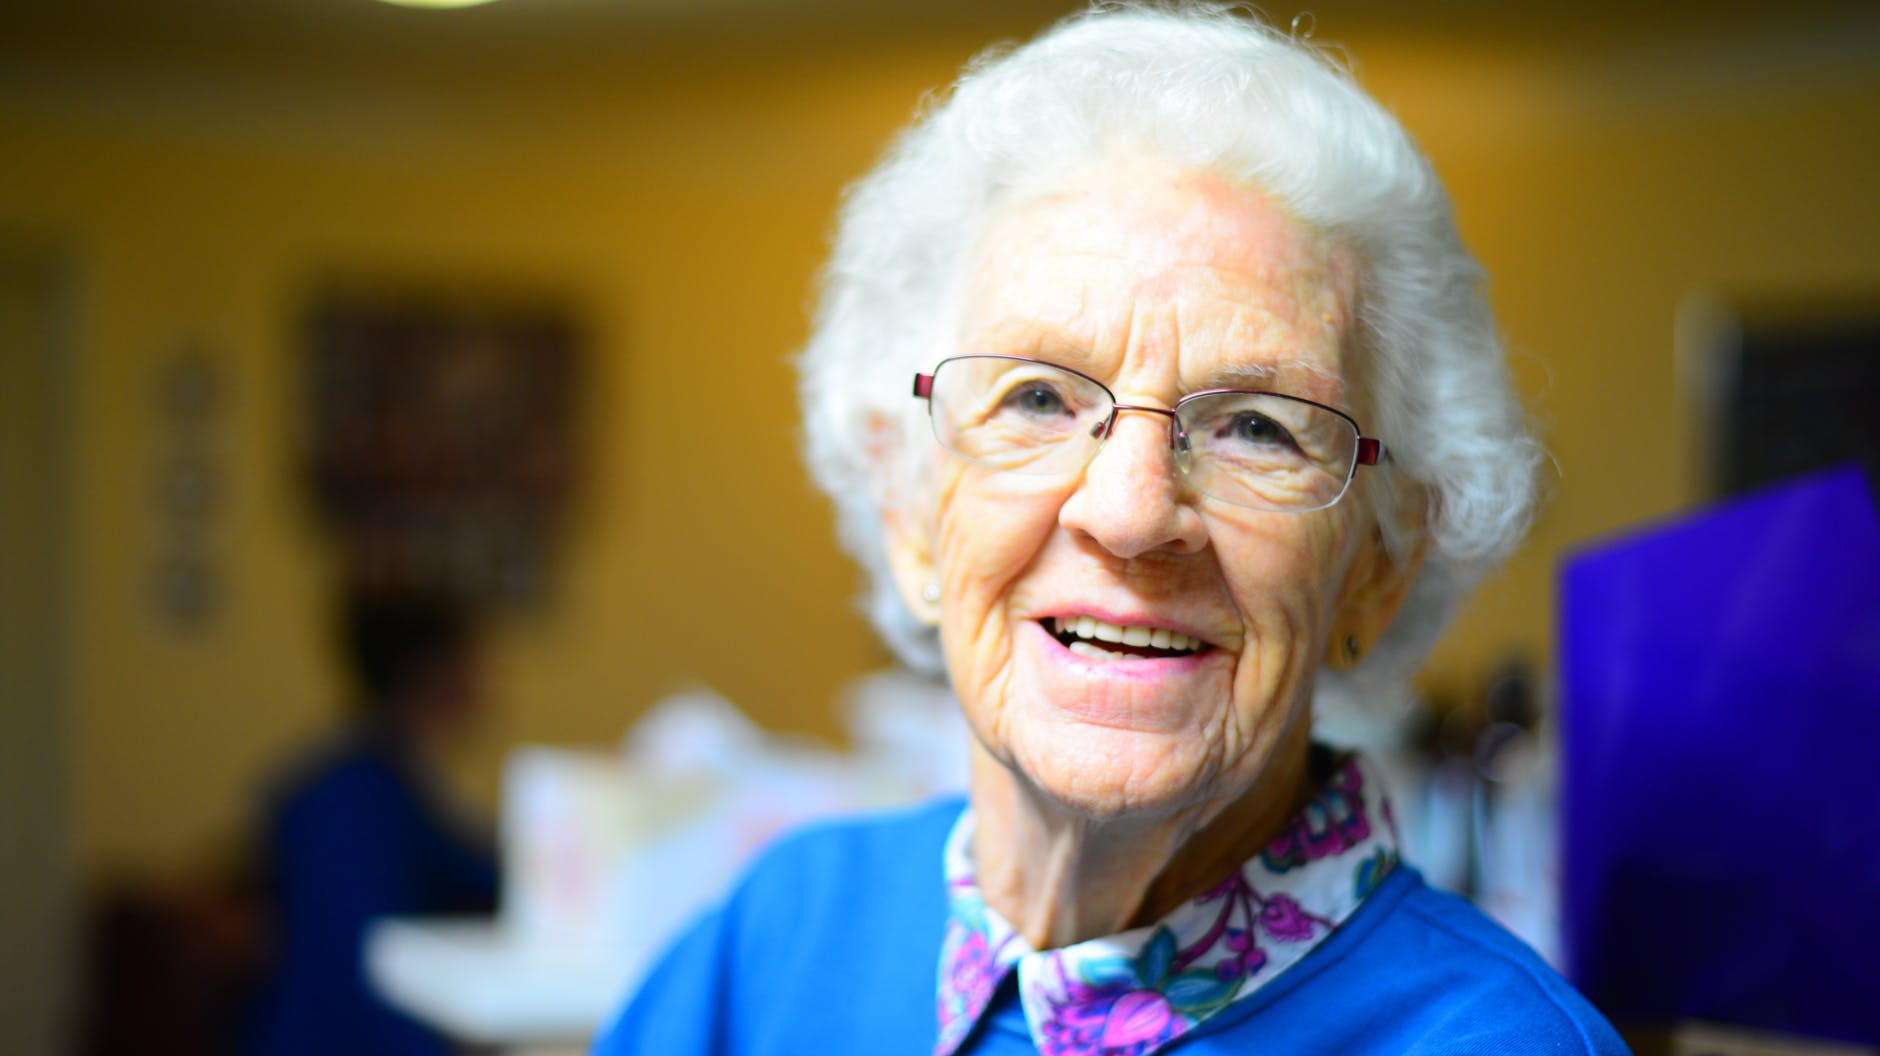 How Homebound Seniors Can Stay Connected Through Technology